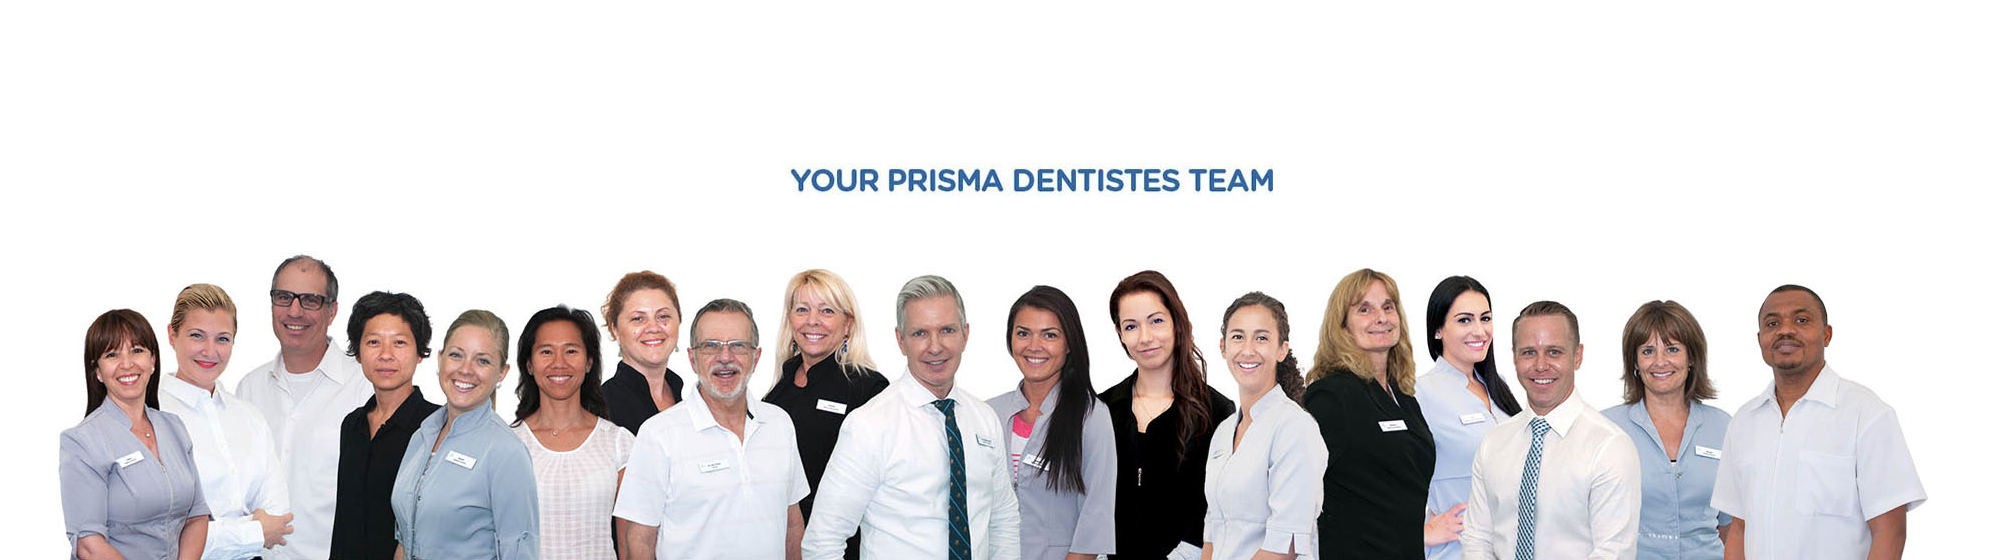 Your Prisma Dentists Team in Montreal